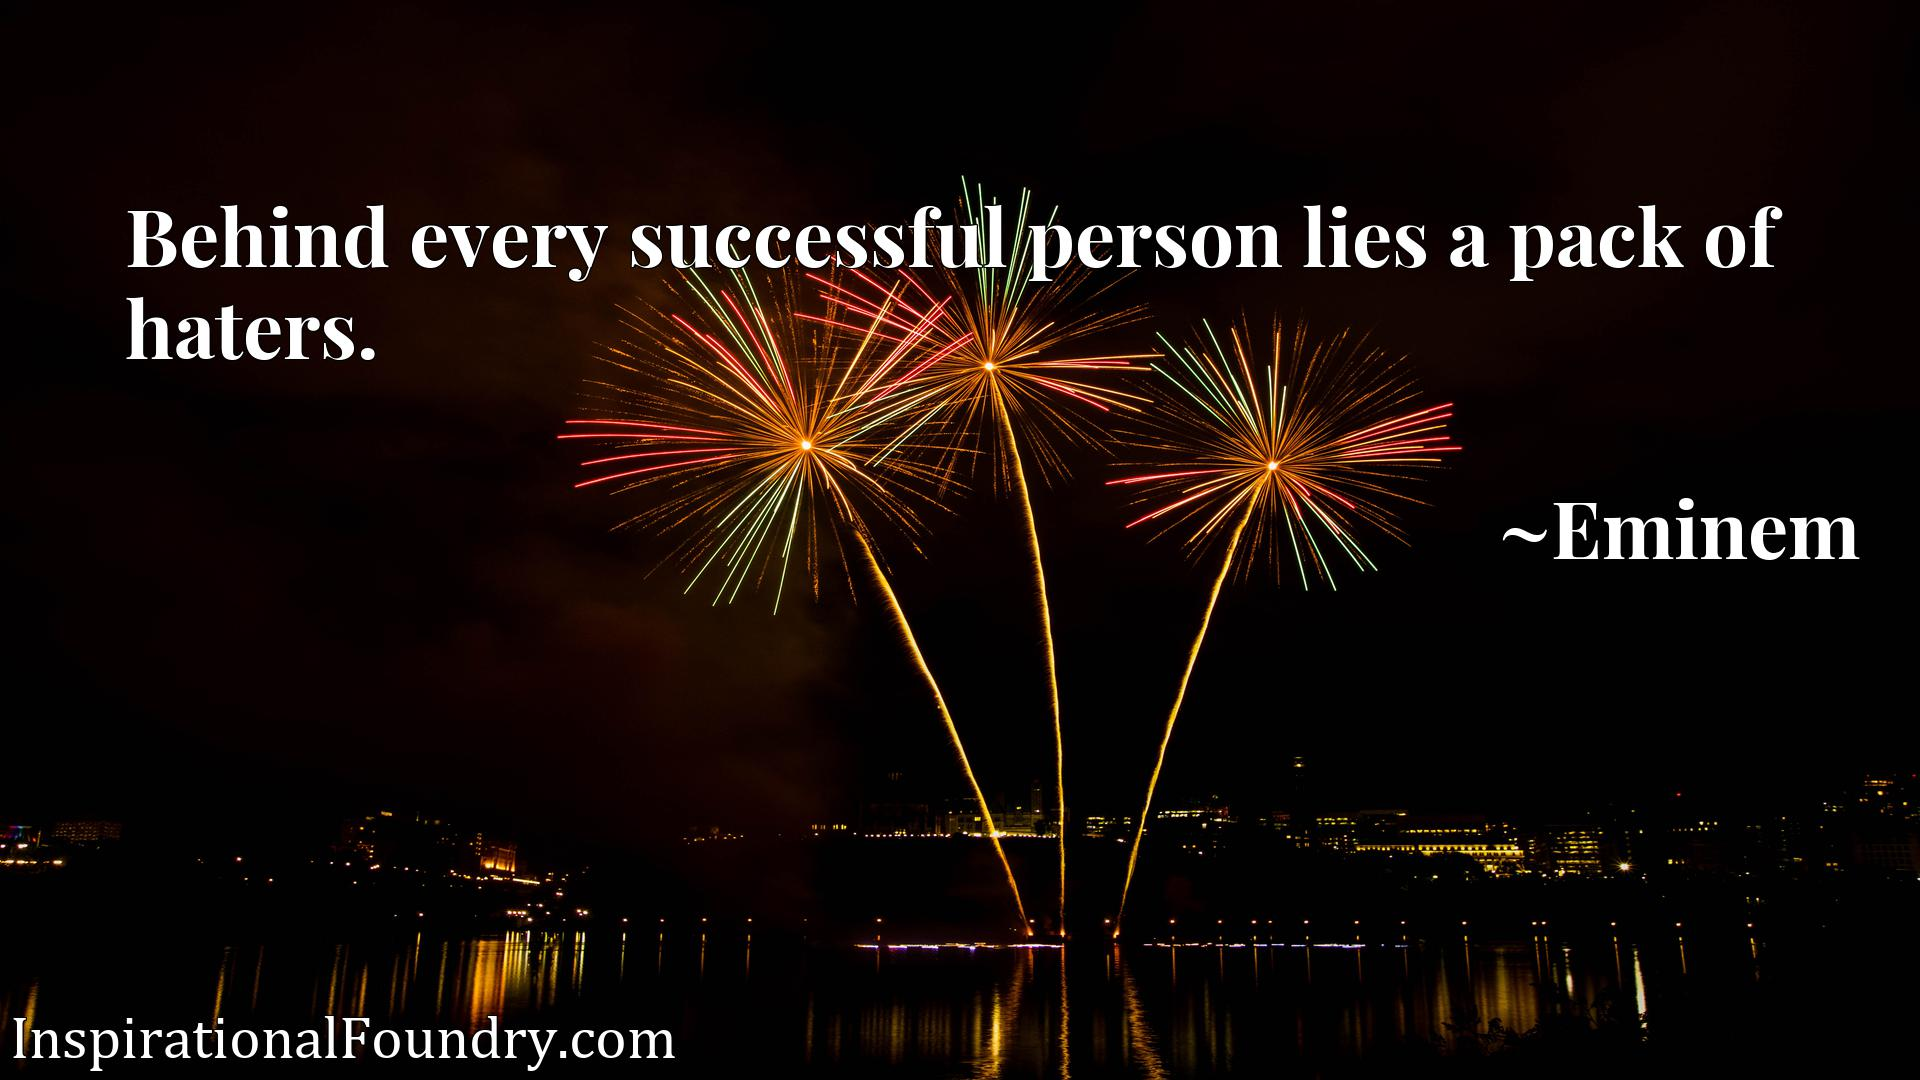 Behind every successful person lies a pack of haters.